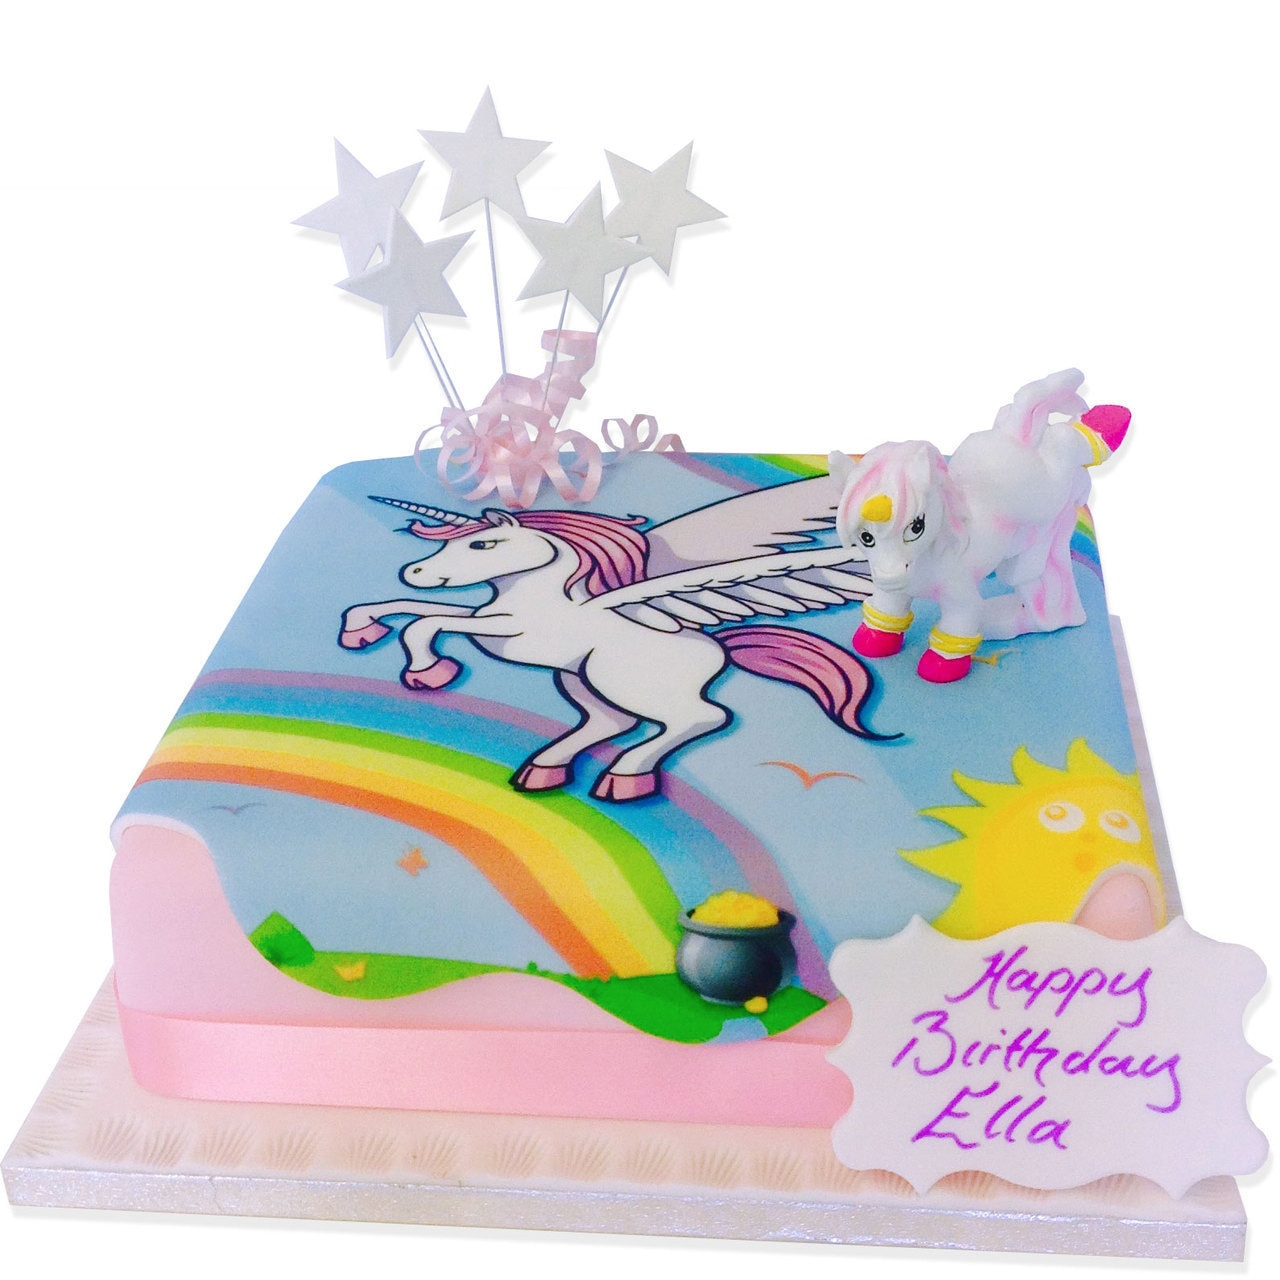 1280 X In 32 Brilliant Image Of Birthday Cakes For Girls